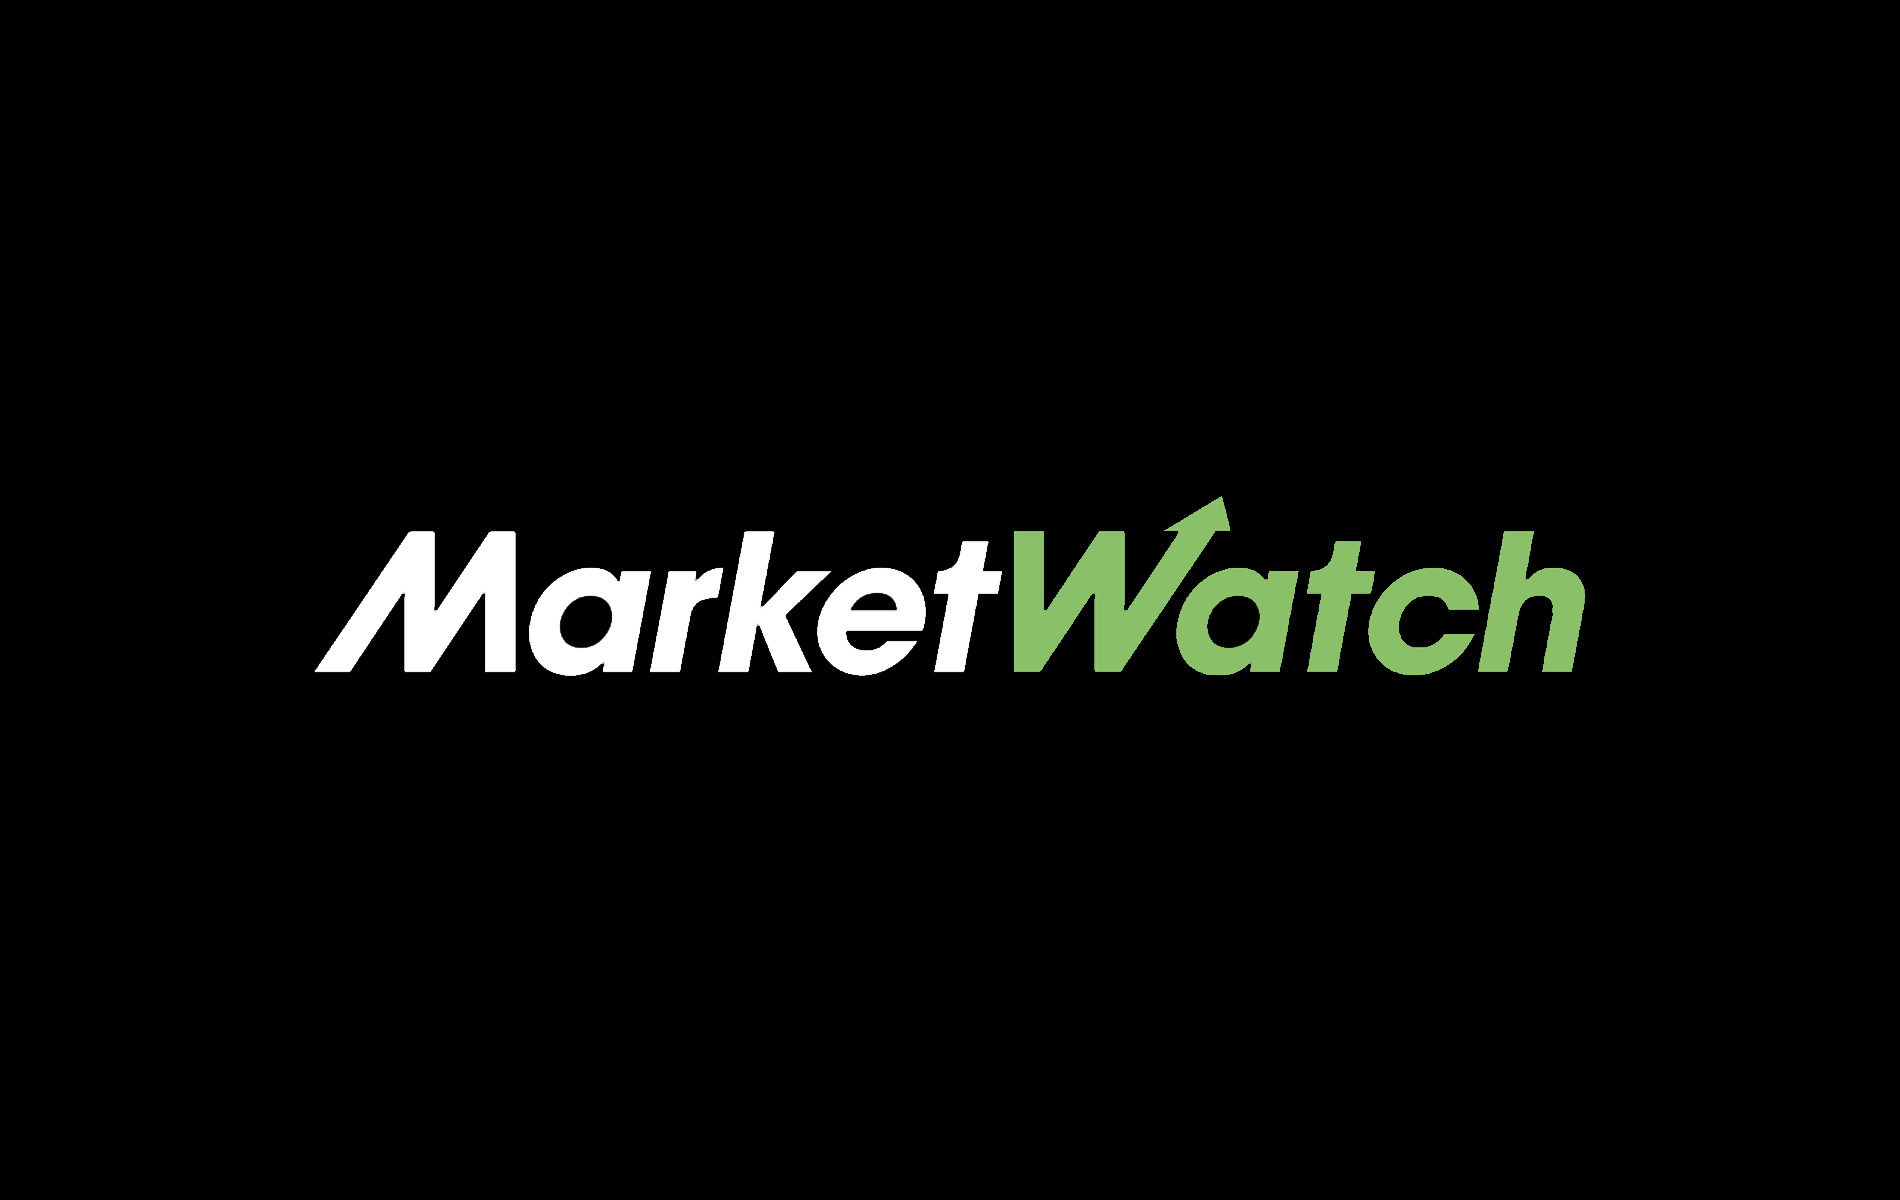 Logo of marketwatch.com